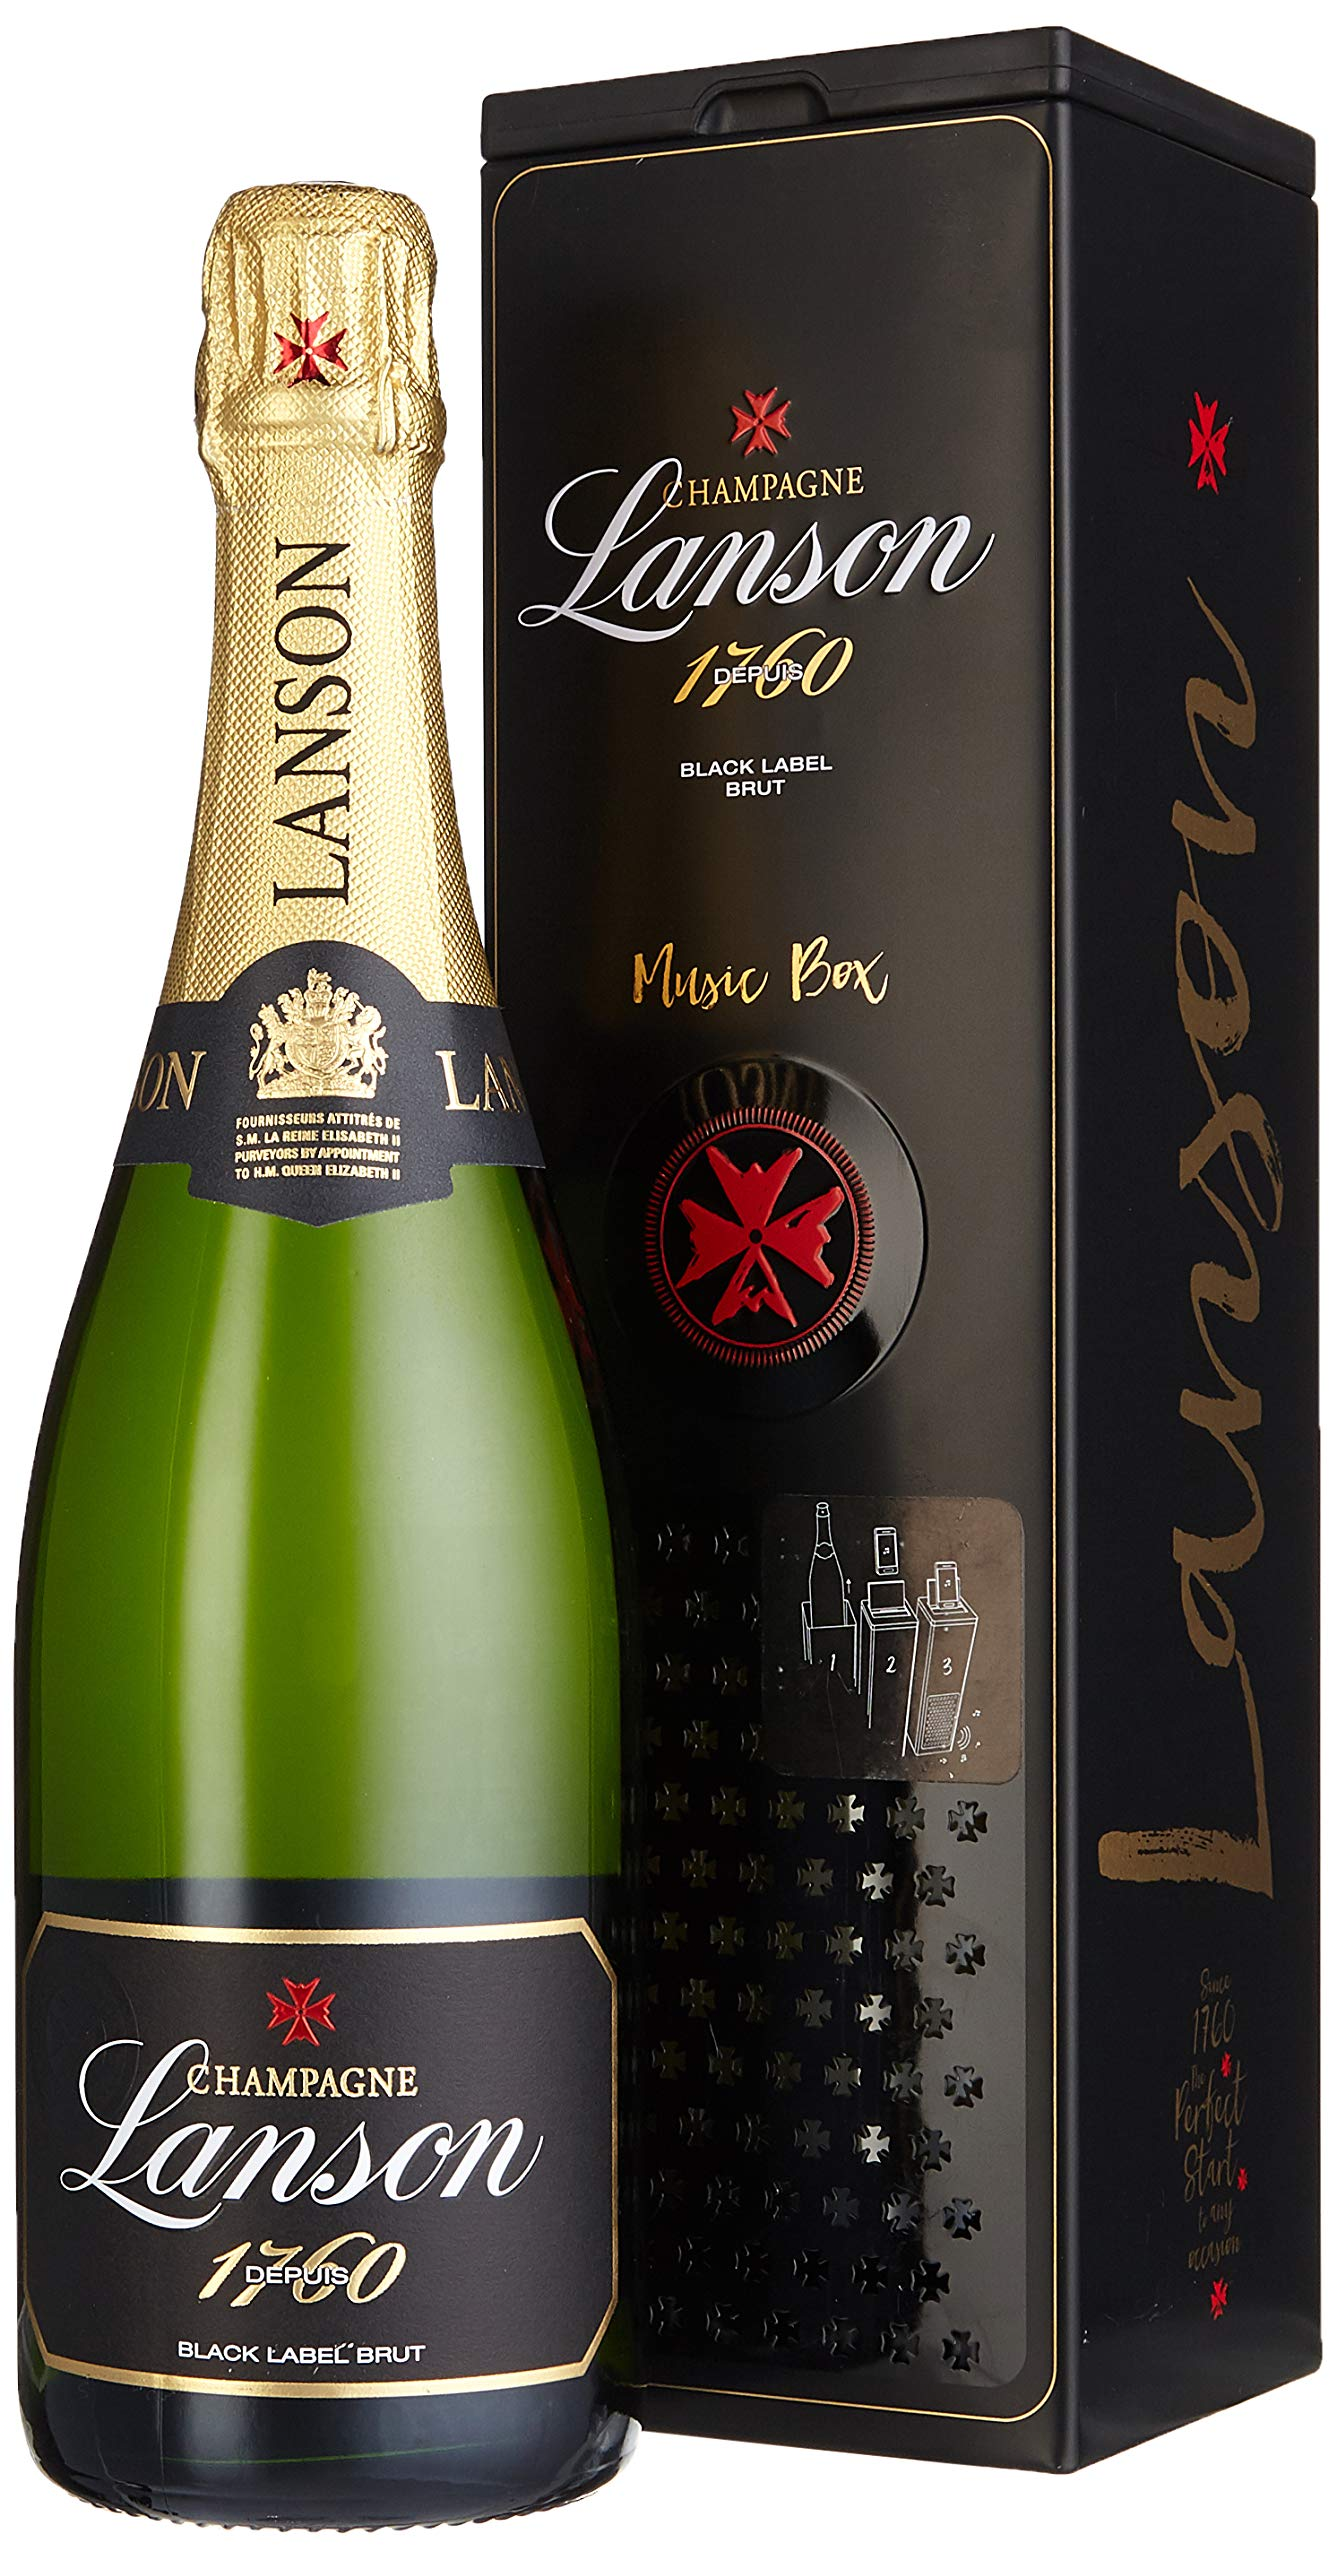 Lanson-Black-Label-in-Geschenkdose-portable-musicbox-Champagner-1-x-075-l